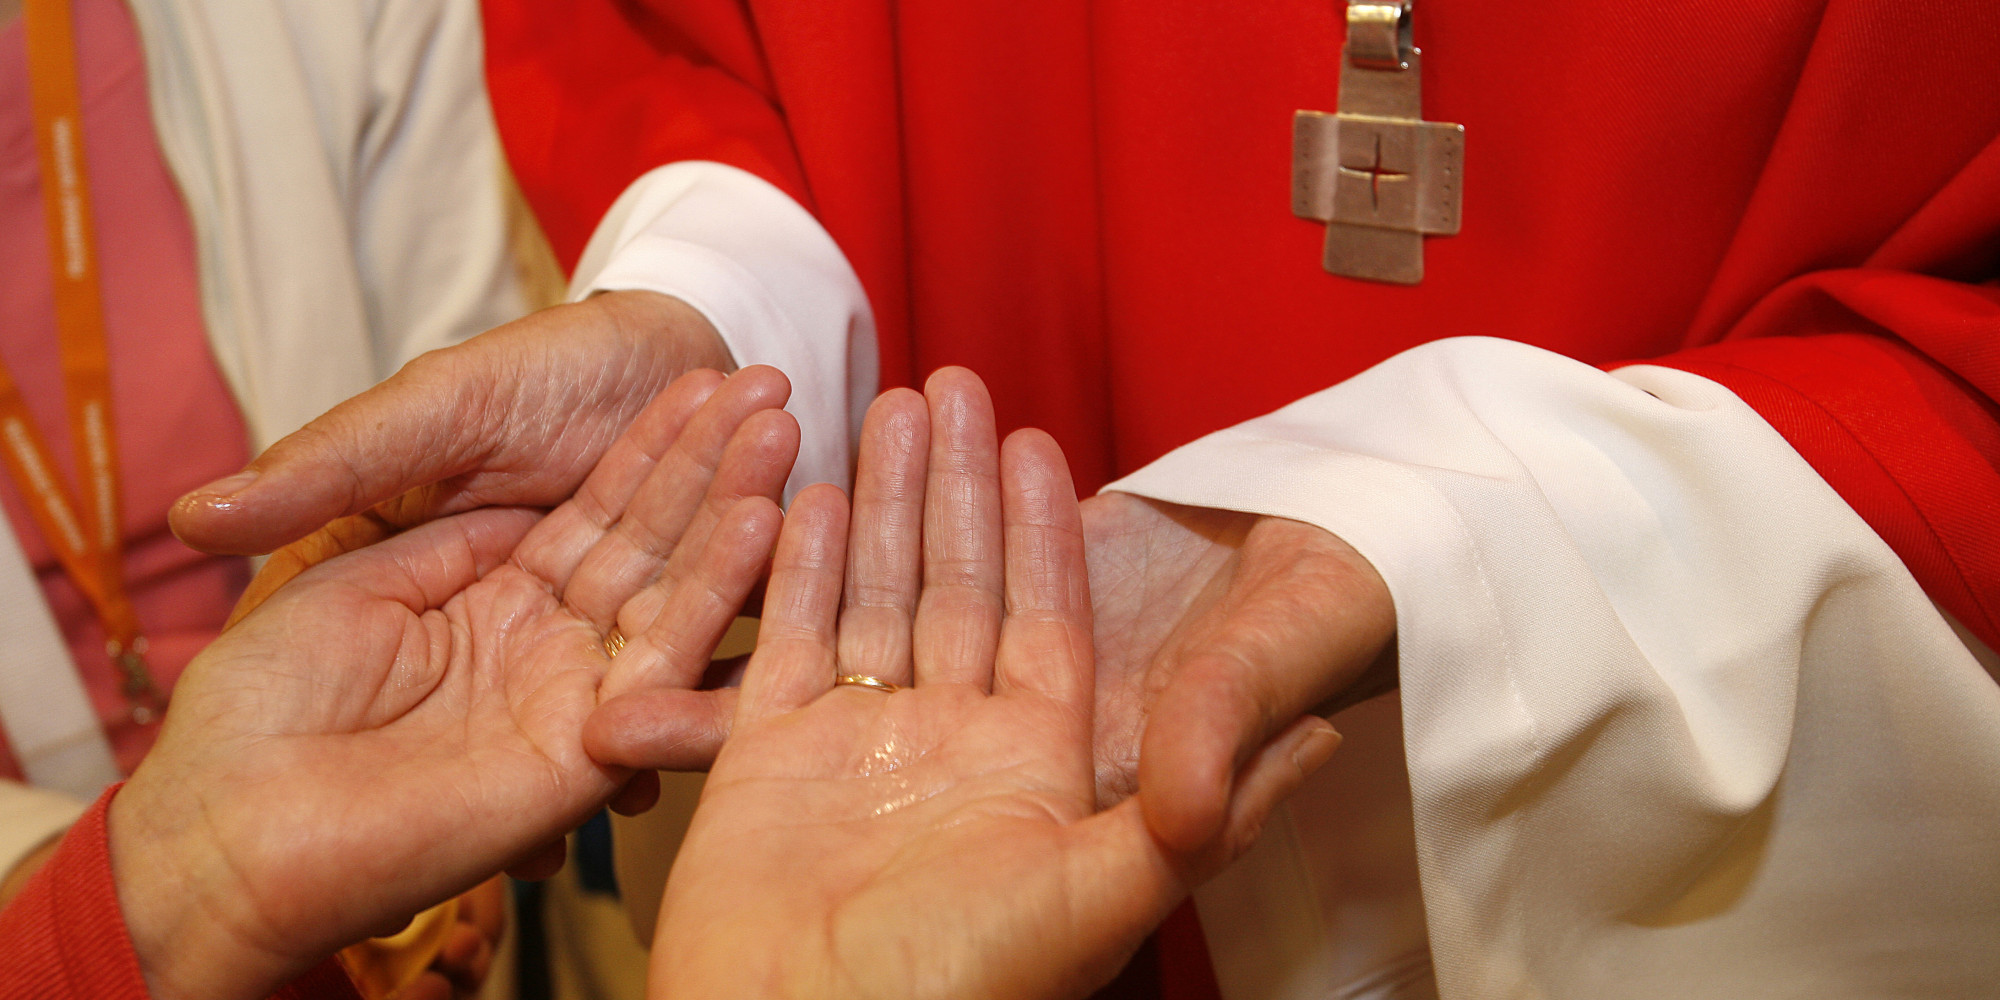 Bishop anointing a sick person (Photo by: Godong/Universal Images Group via Getty Images)